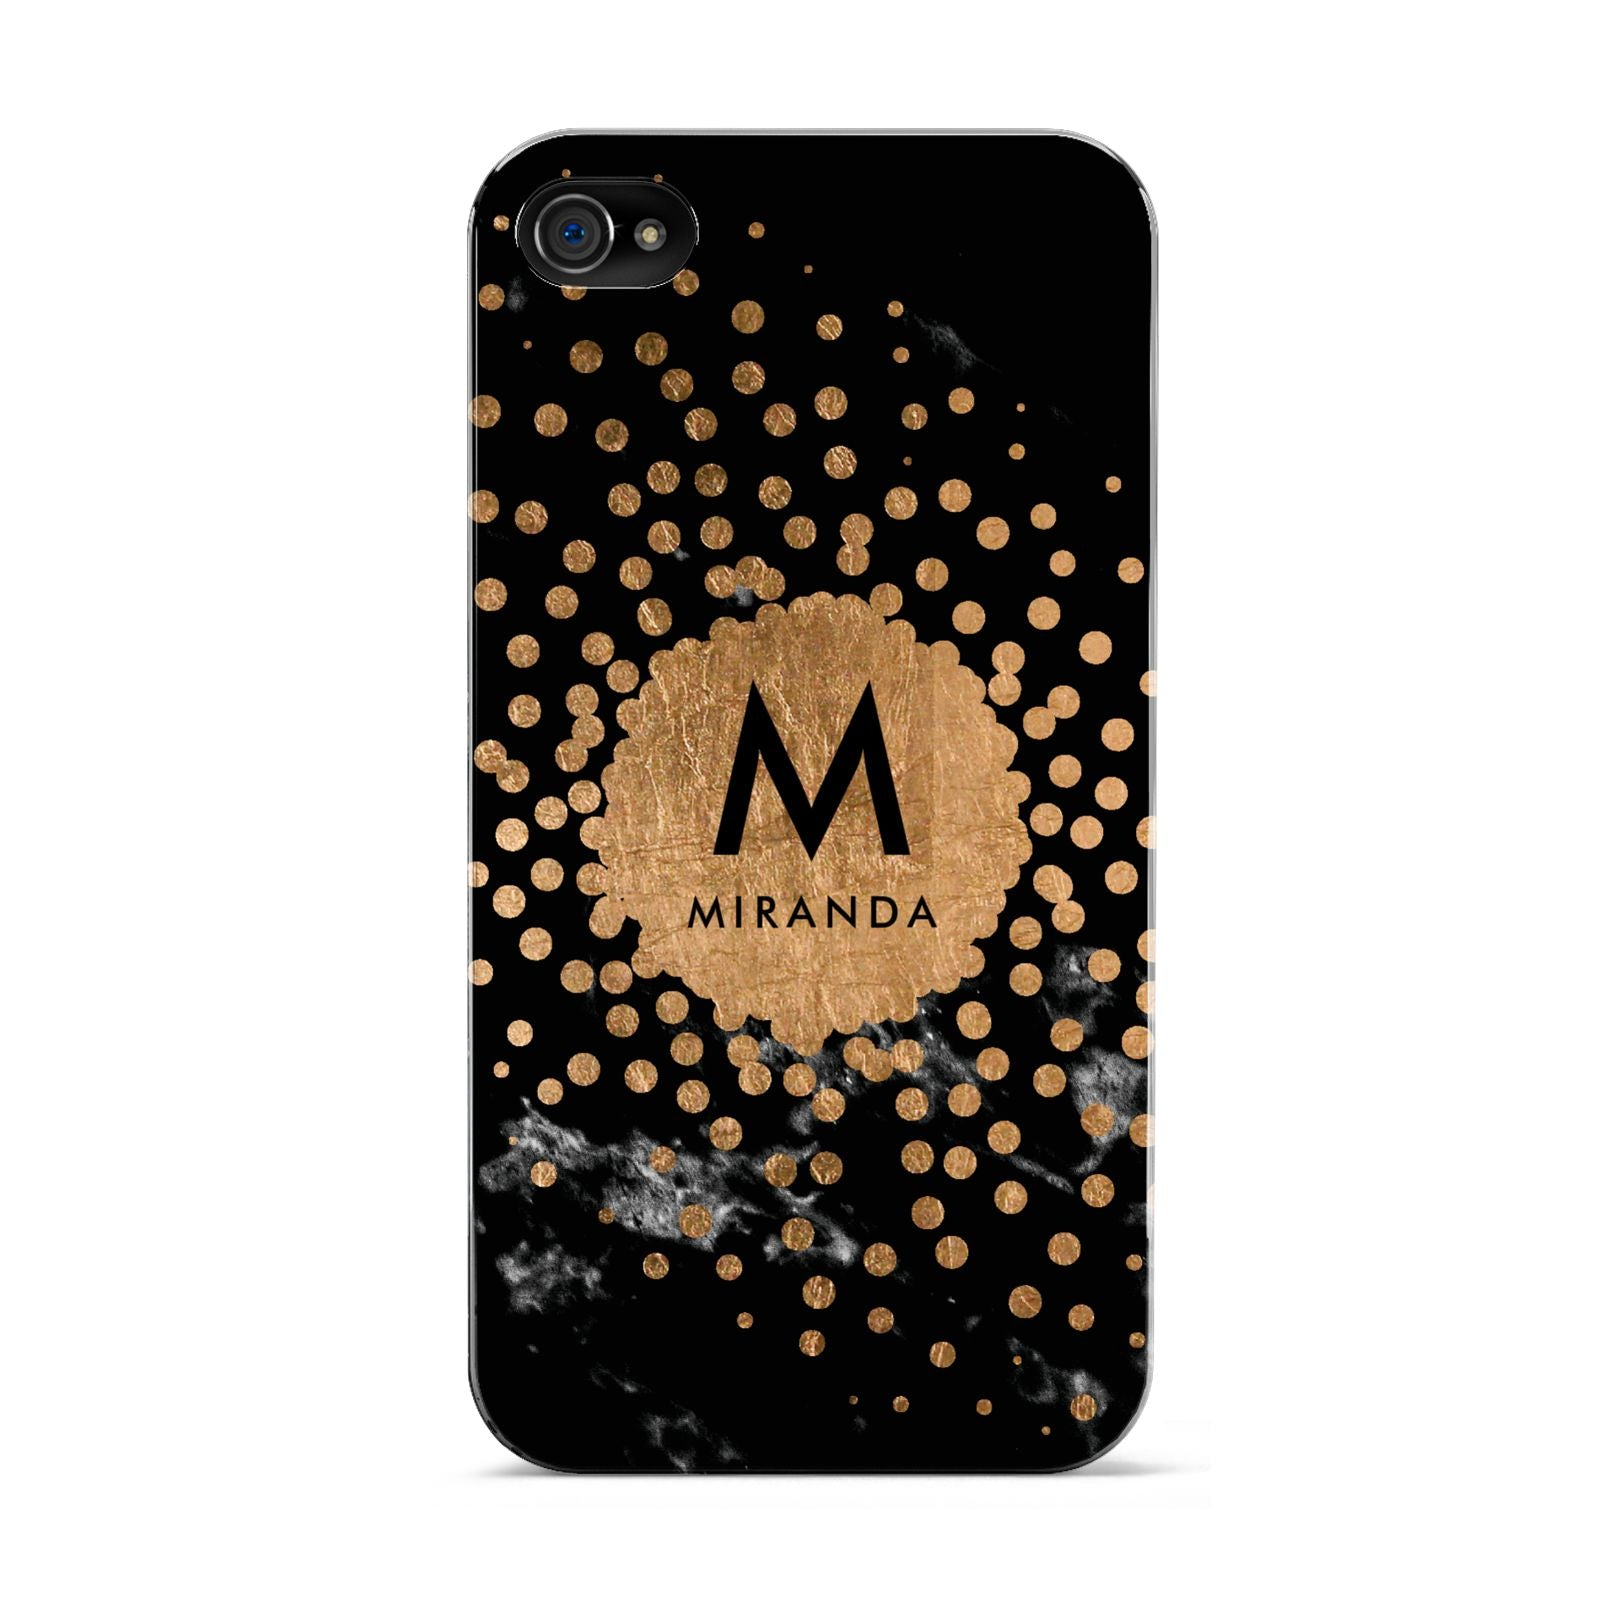 Personalised Copper Black Marble With Name Apple iPhone 4s Case